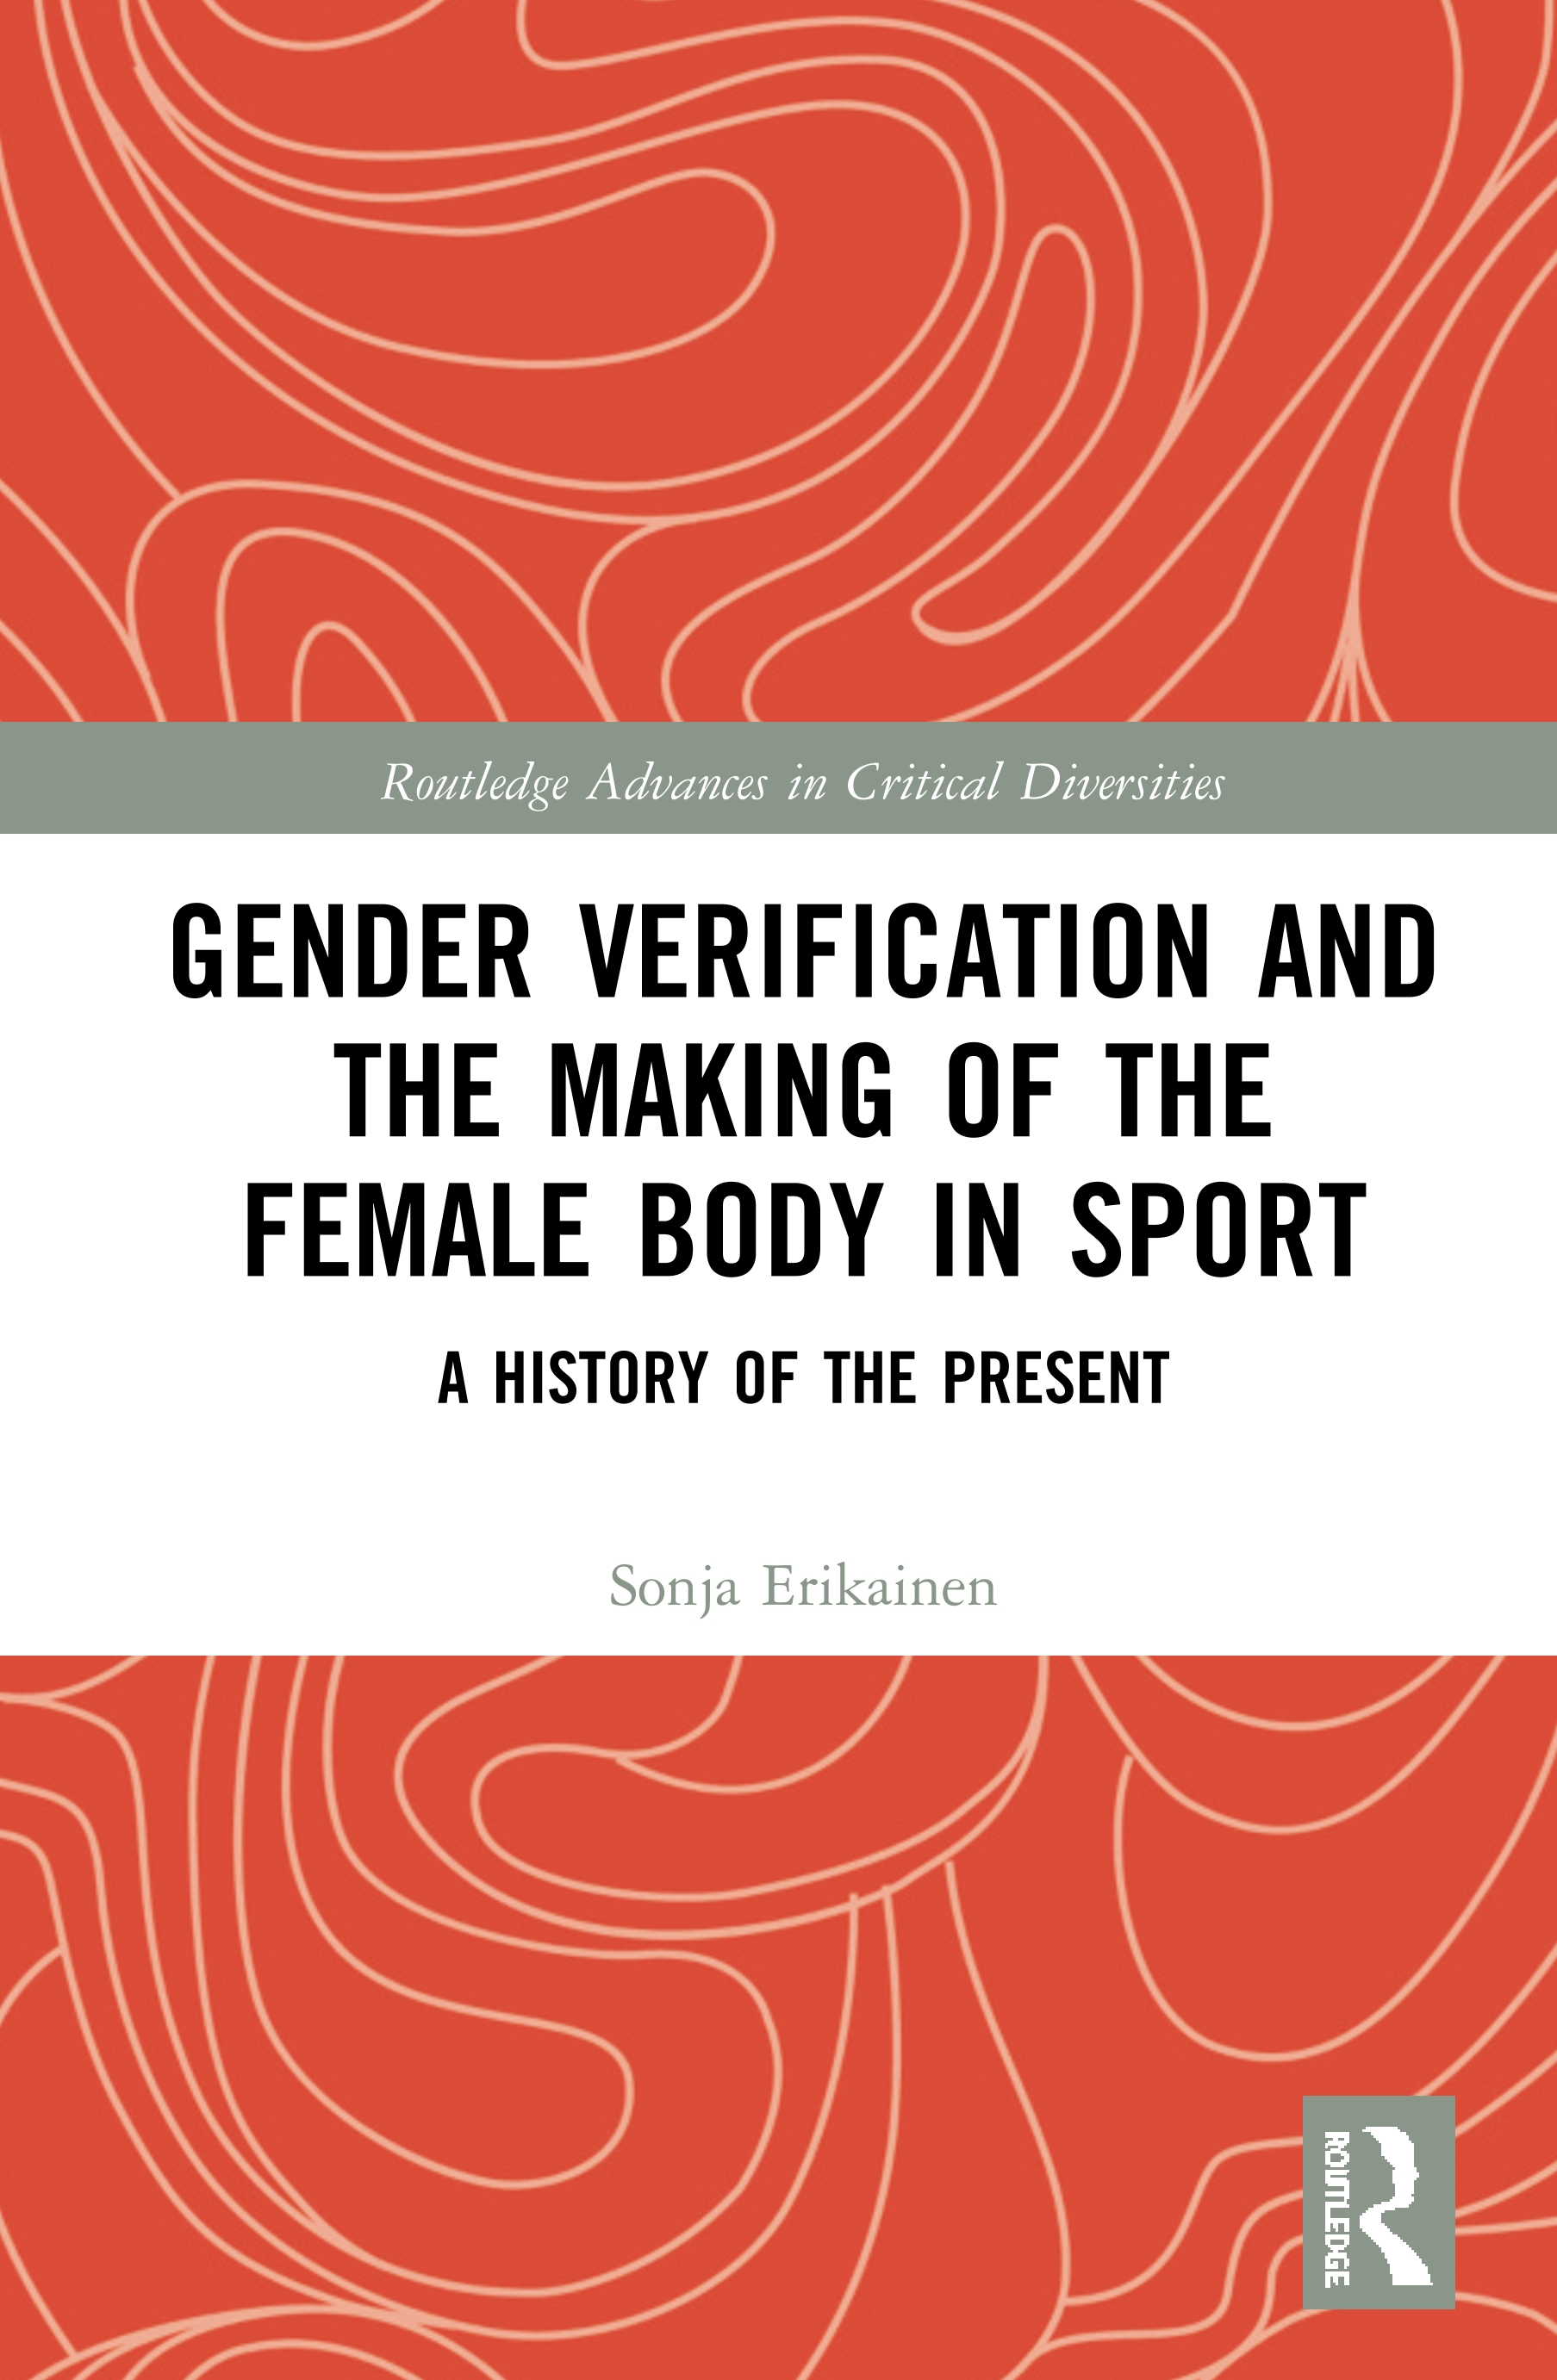 Gender Verification and the Making of the Female Body in Sport: A History of the Present book cover